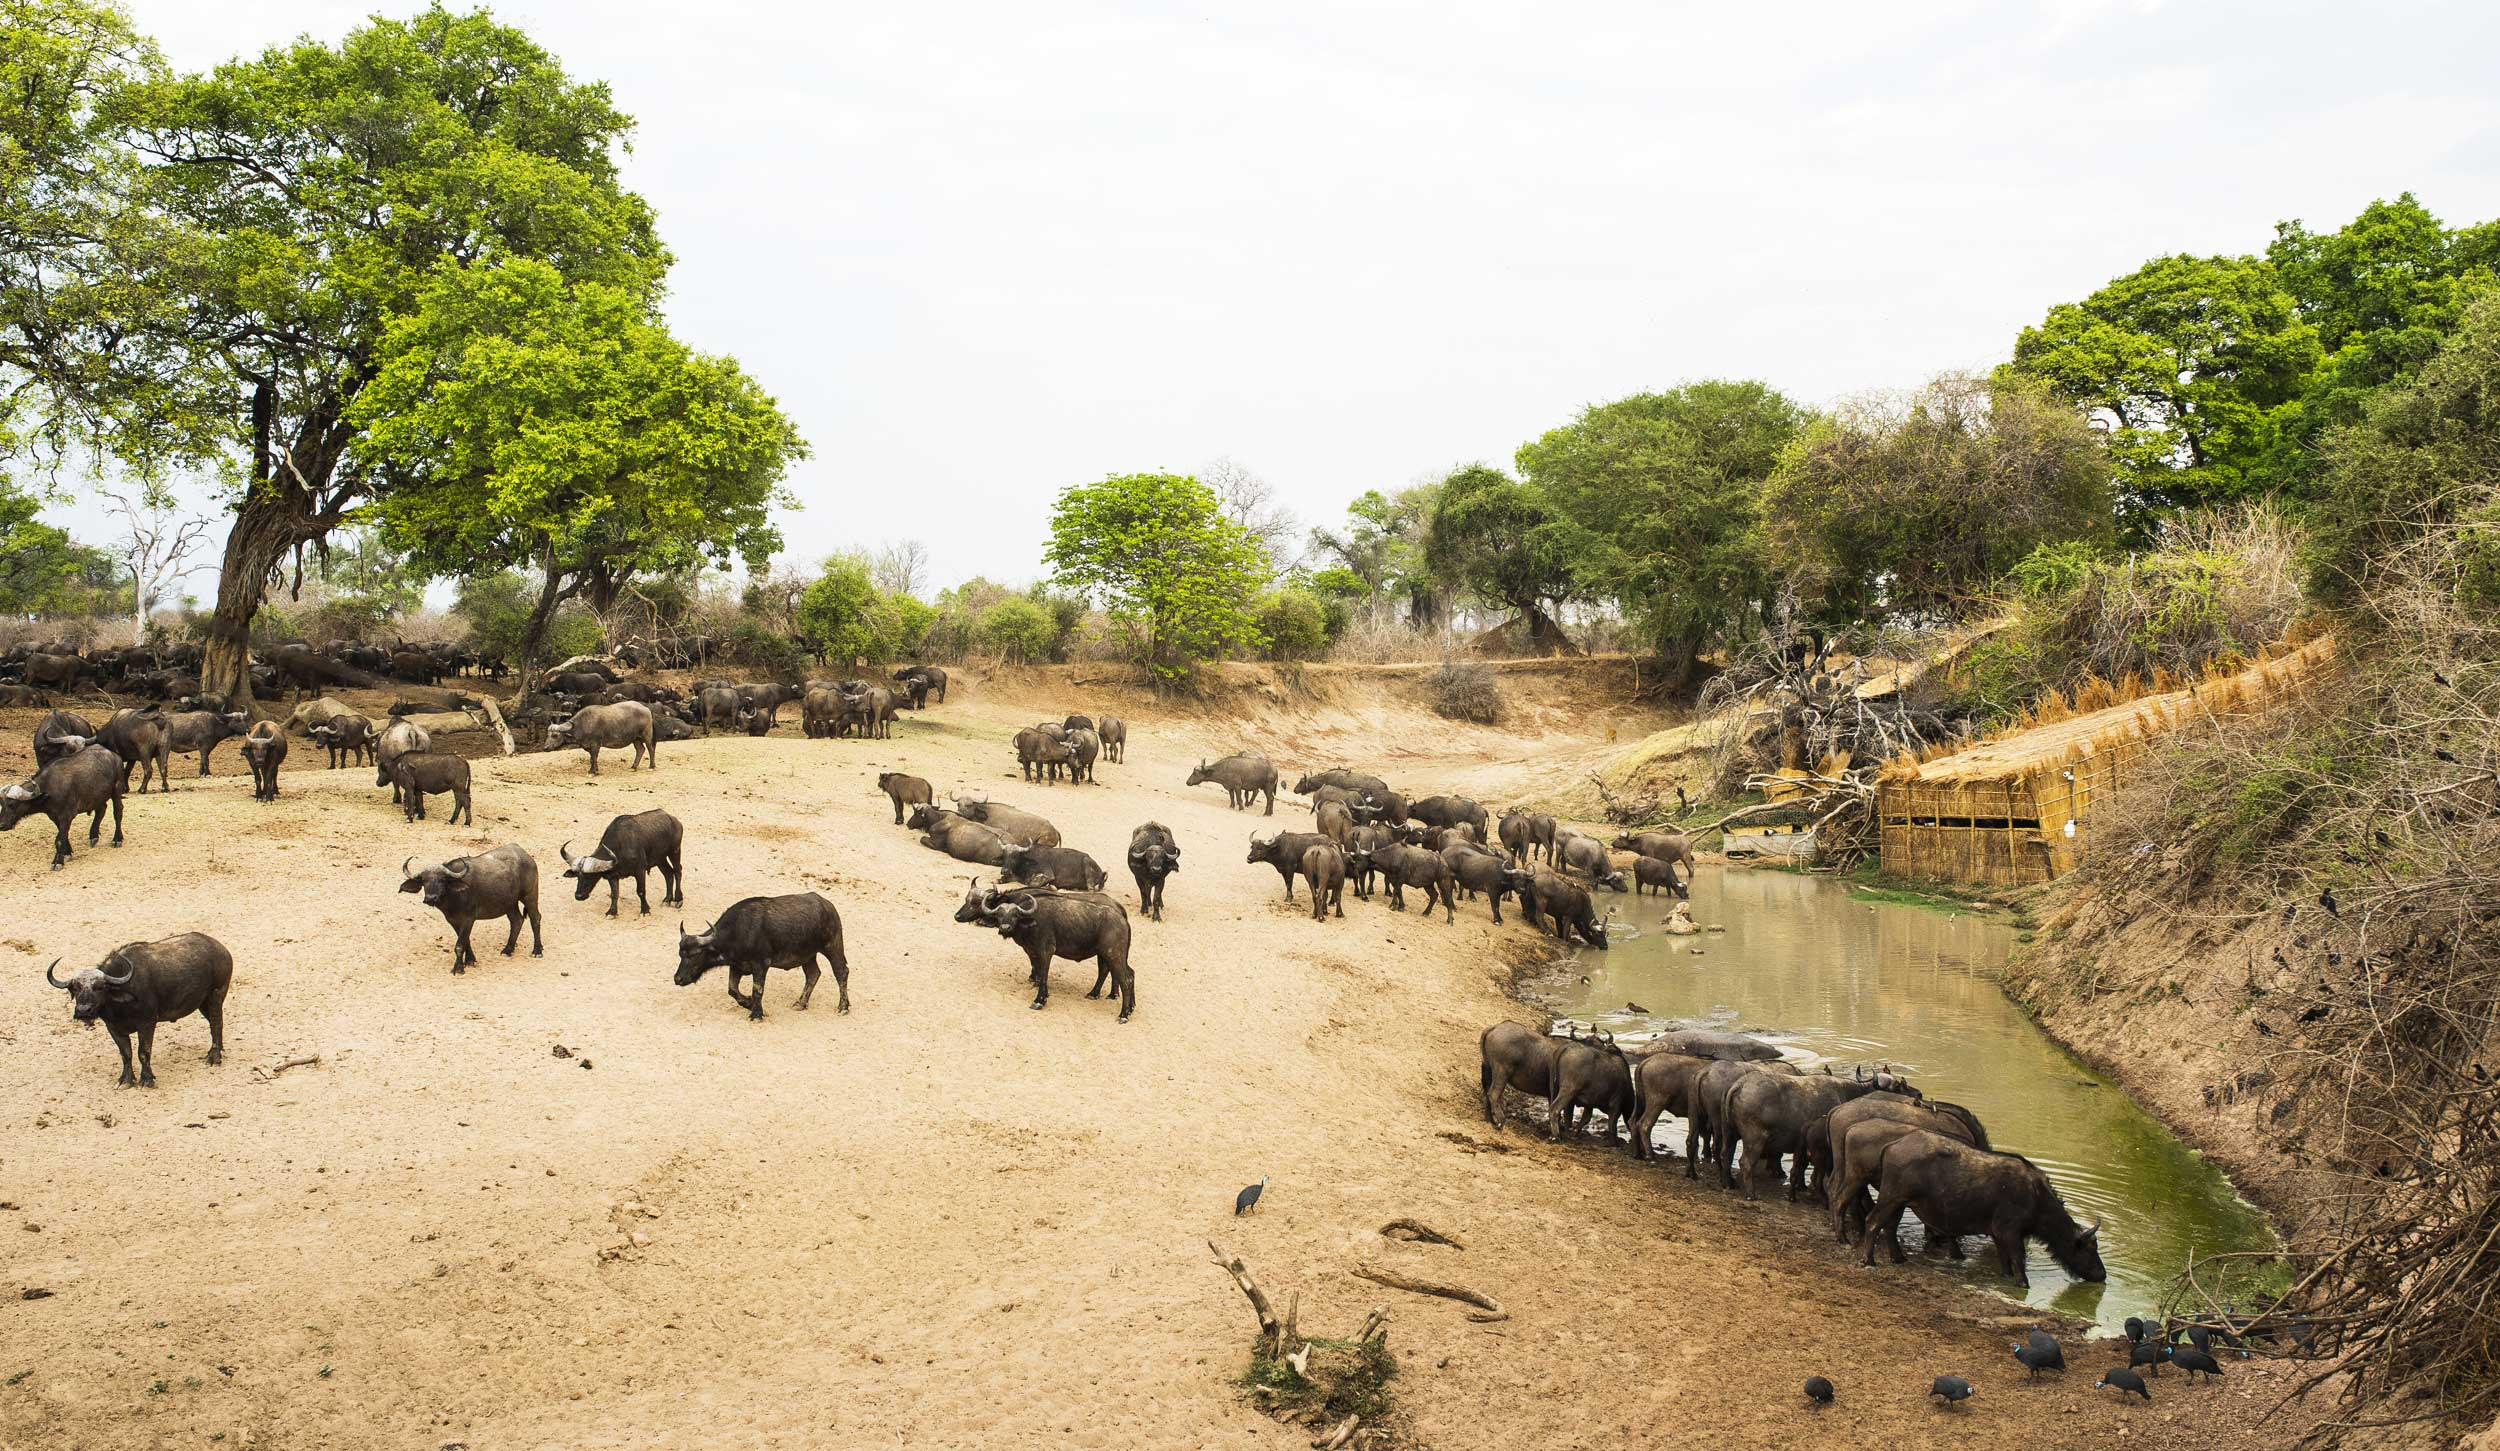 Buffalos around a waterhole with a hide at the far end, Zambia